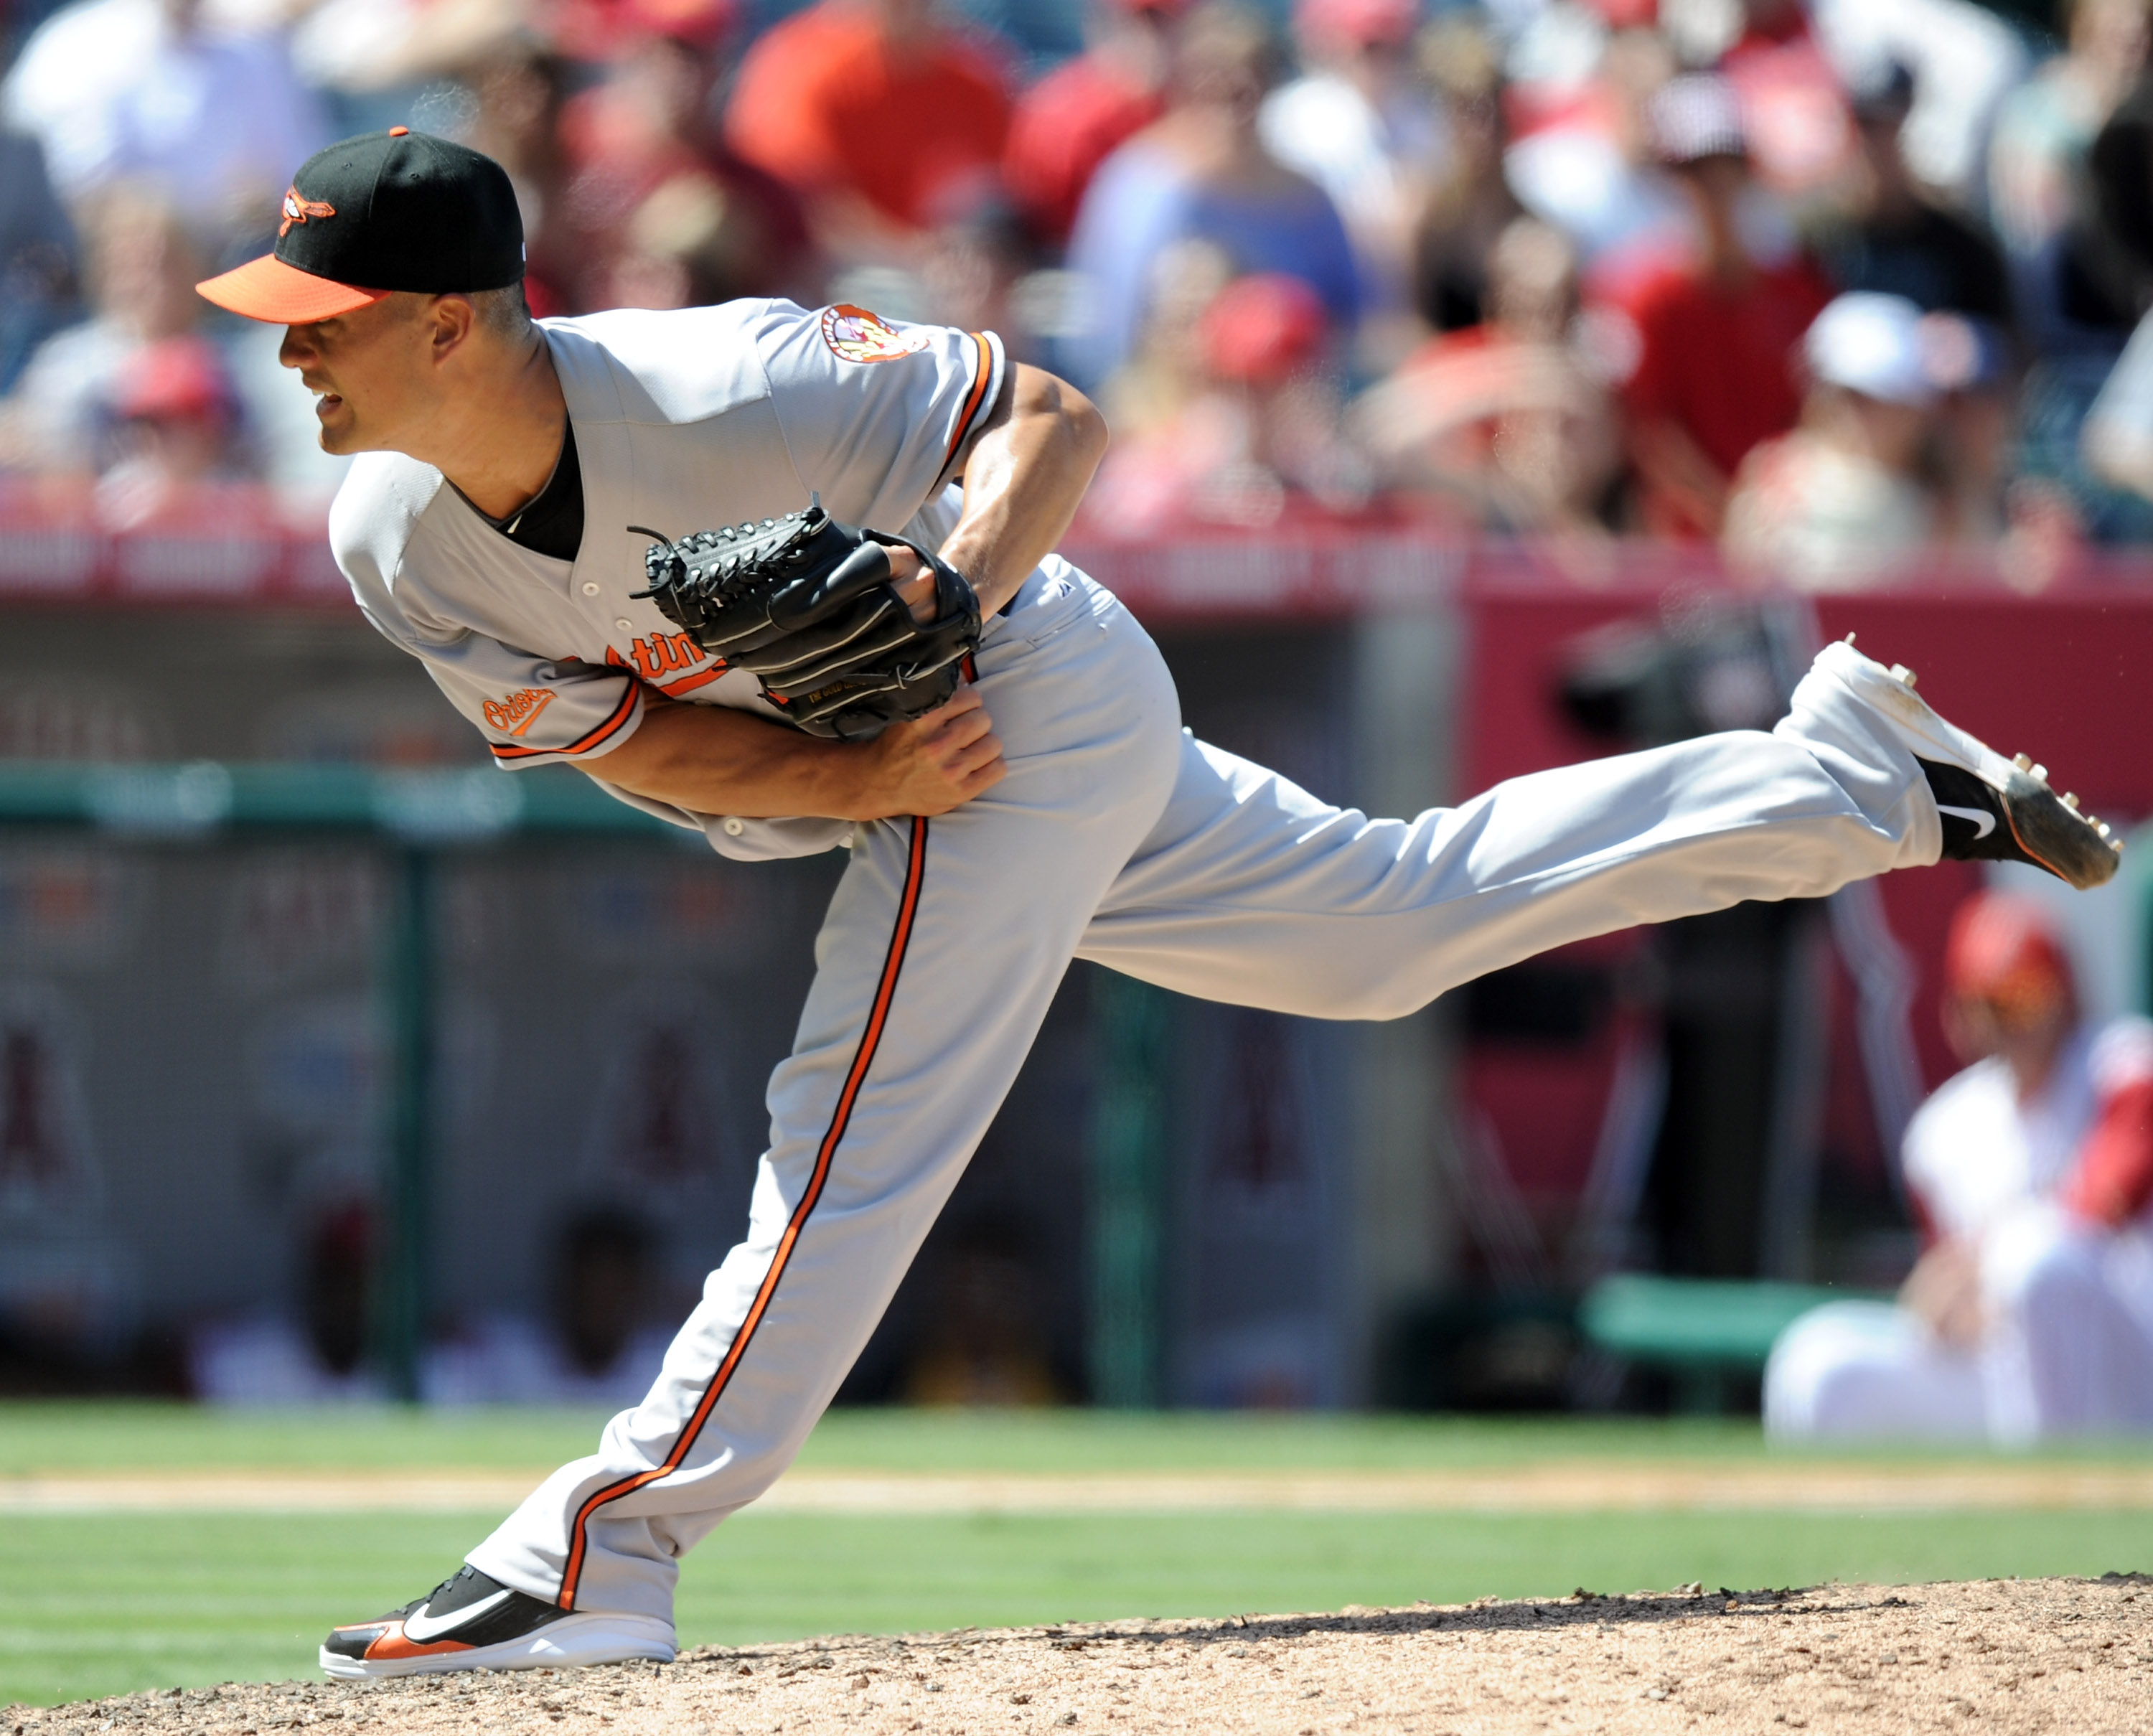 ANAHEIM, CA - AUGUST 29:  Jeremy Guthrie #46 of the Baltimore Orioles pitches against the Los Angeles Angels of Anaheim during the ninth inning at Angel Stadium on August 29, 2010 in Anaheim, California.  (Photo by Harry How/Getty Images)